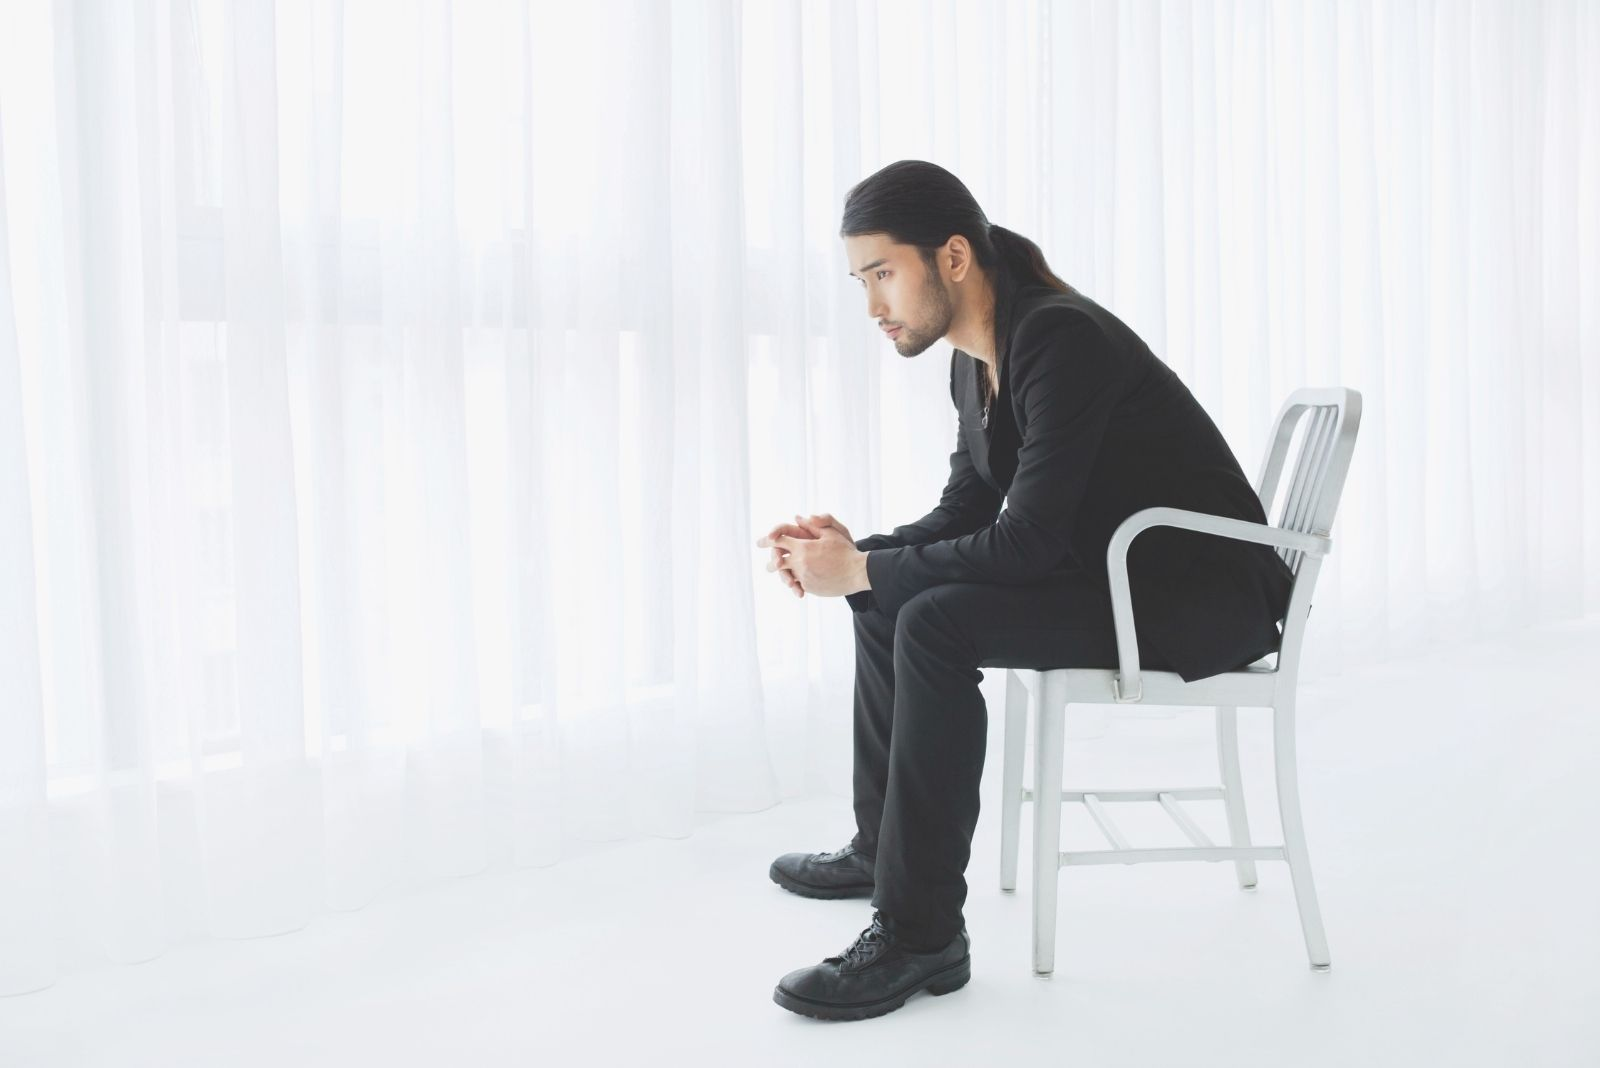 smart young japanese man sitting and thinking deeply